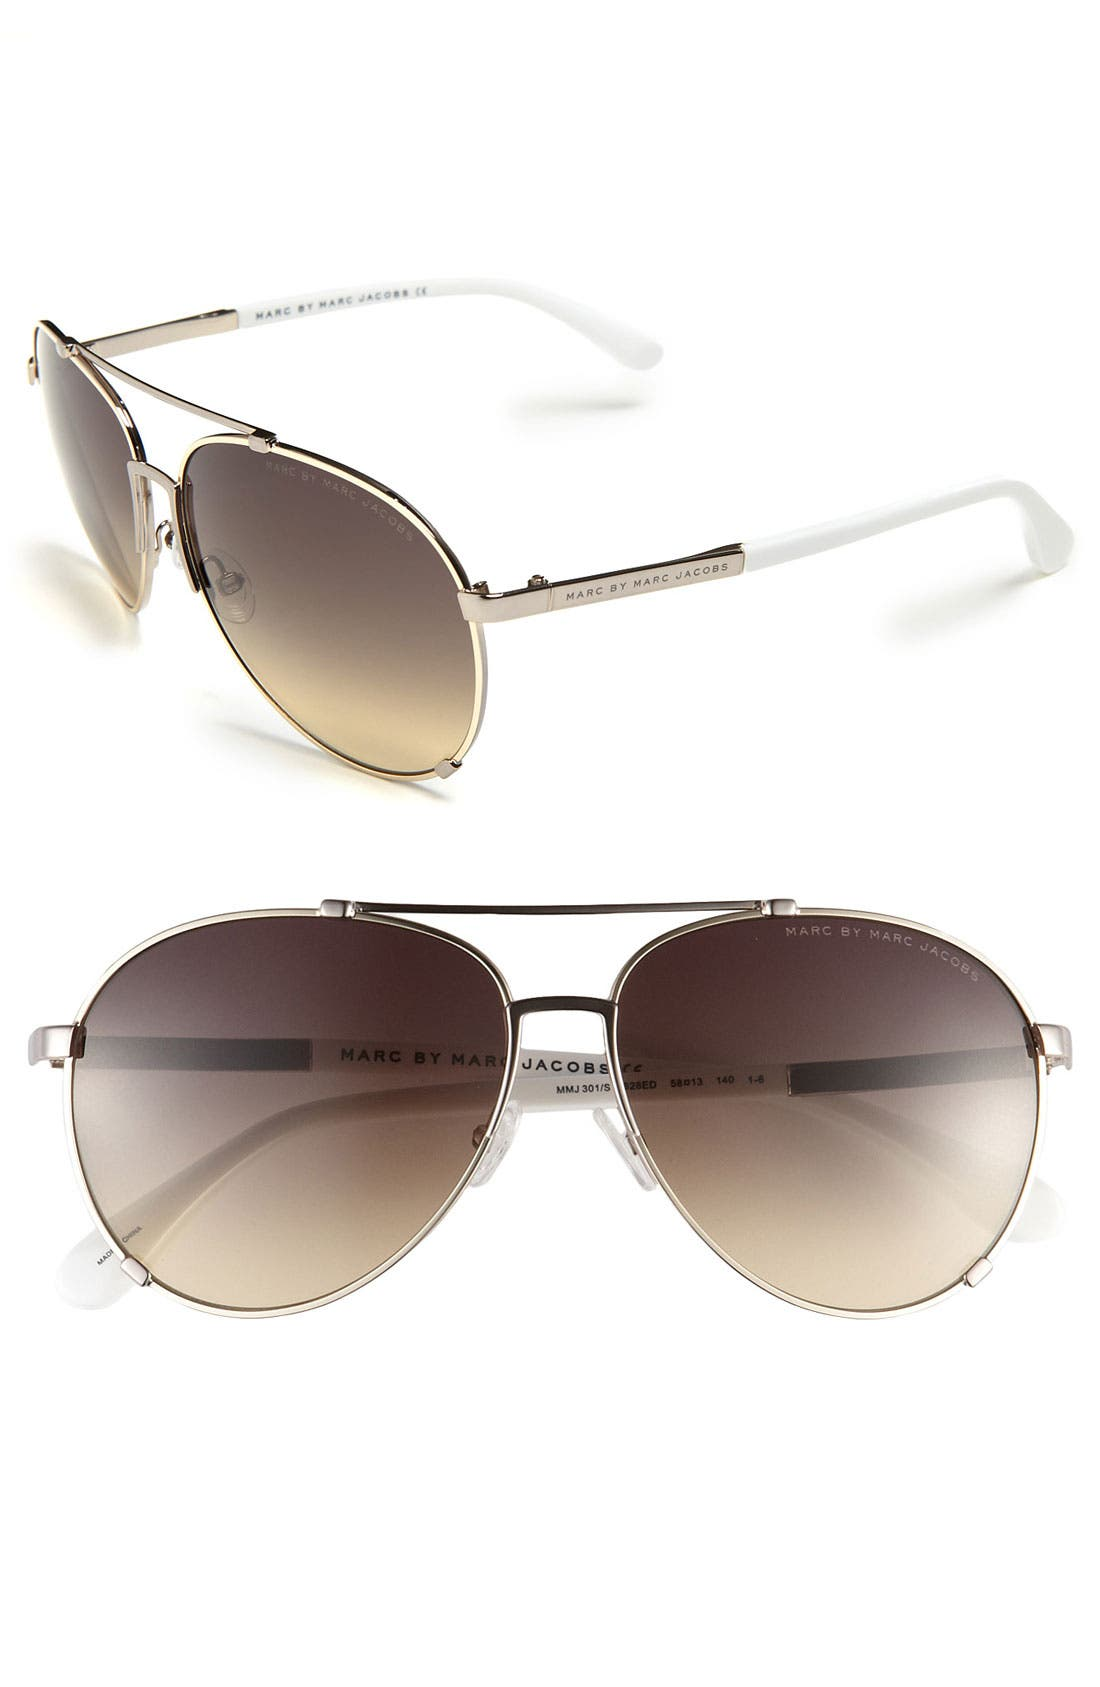 Main Image - MARC BY MARC JACOBS 58mm Metal Aviator Sunglasses